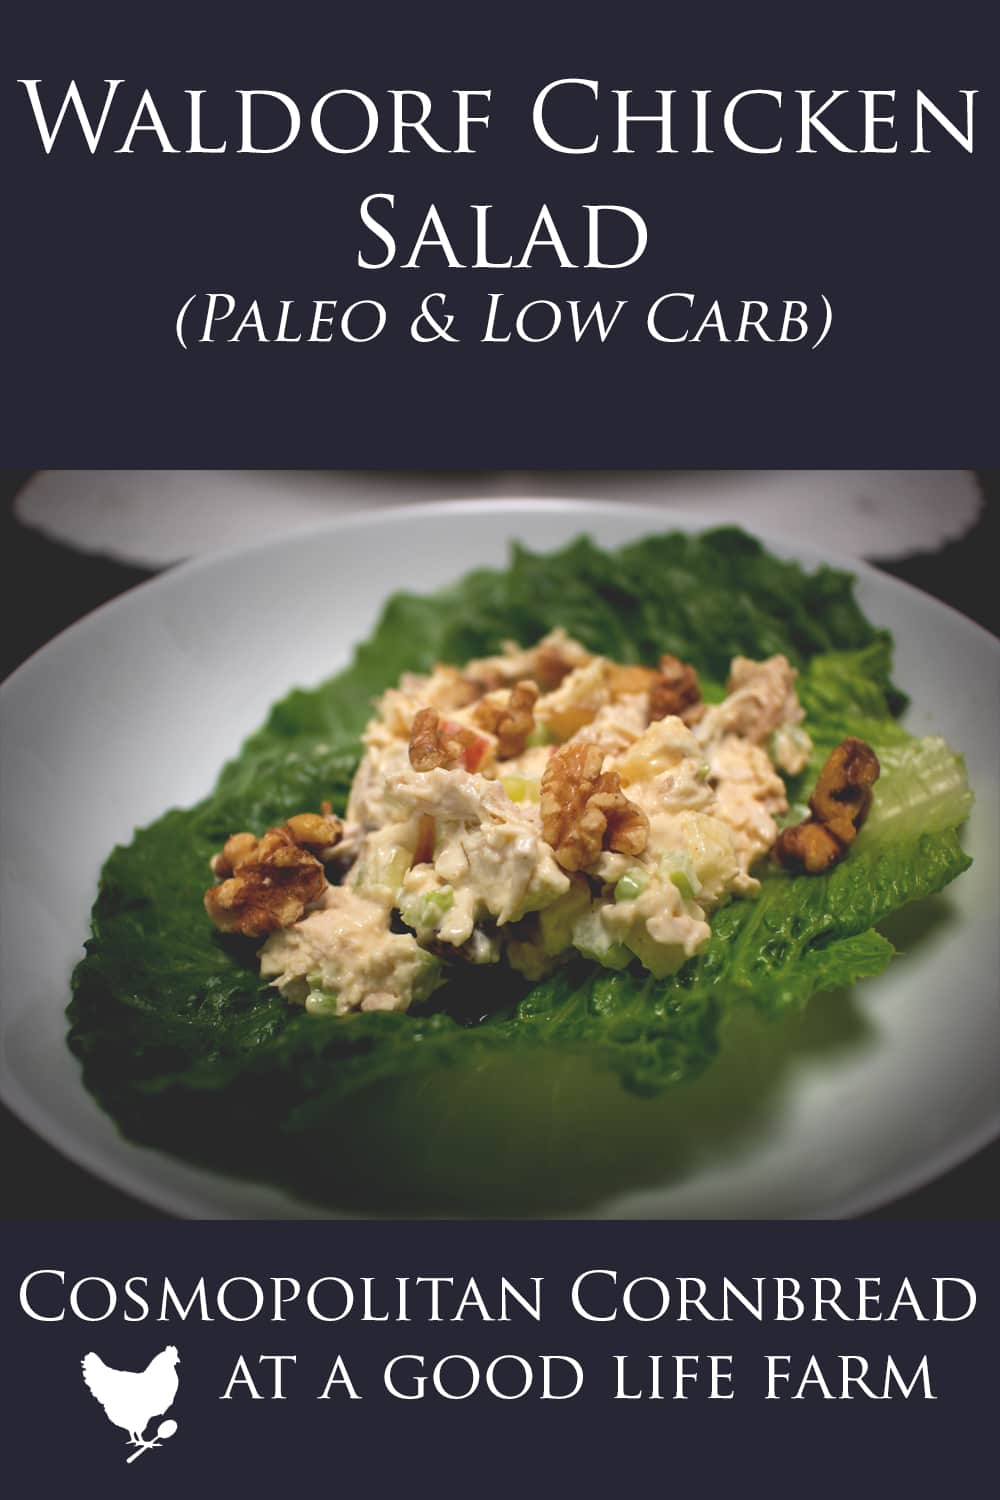 Easy and Delicious Waldorf Chicken Salad. This recipe is low carb & paleo friendly.